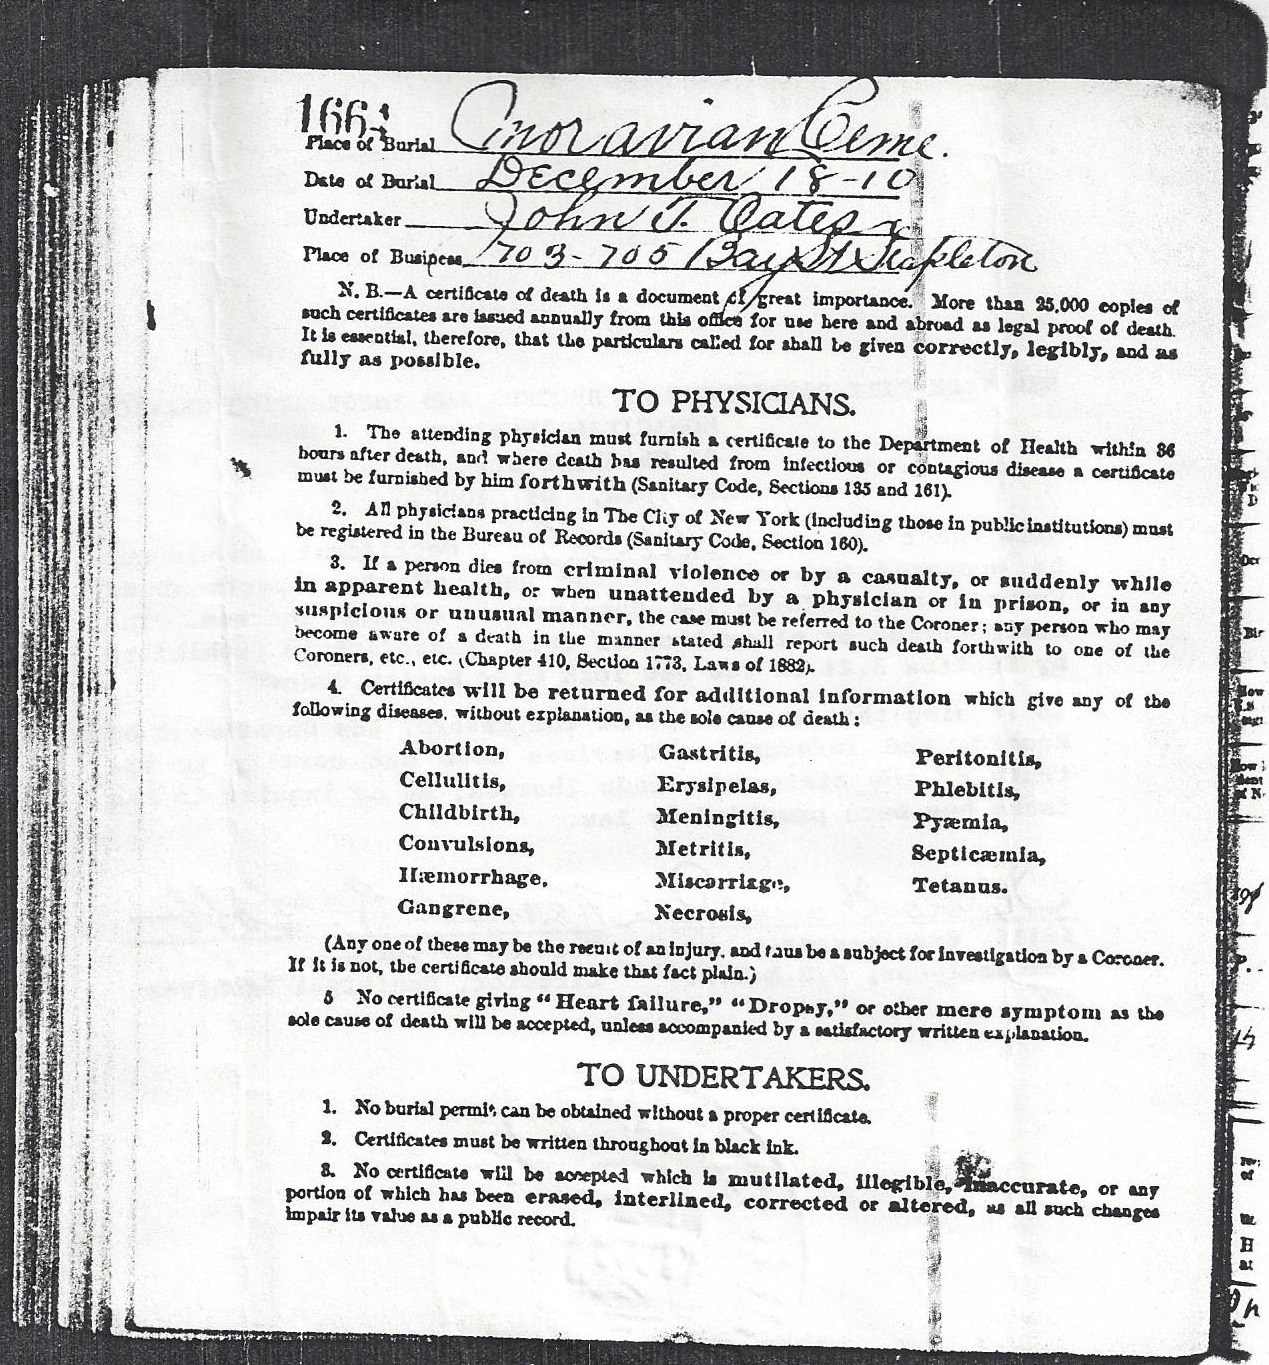 Forestburgh new york putnam sisters mary a ferguson death certificate 15 december 1910 pg2 xflitez Image collections